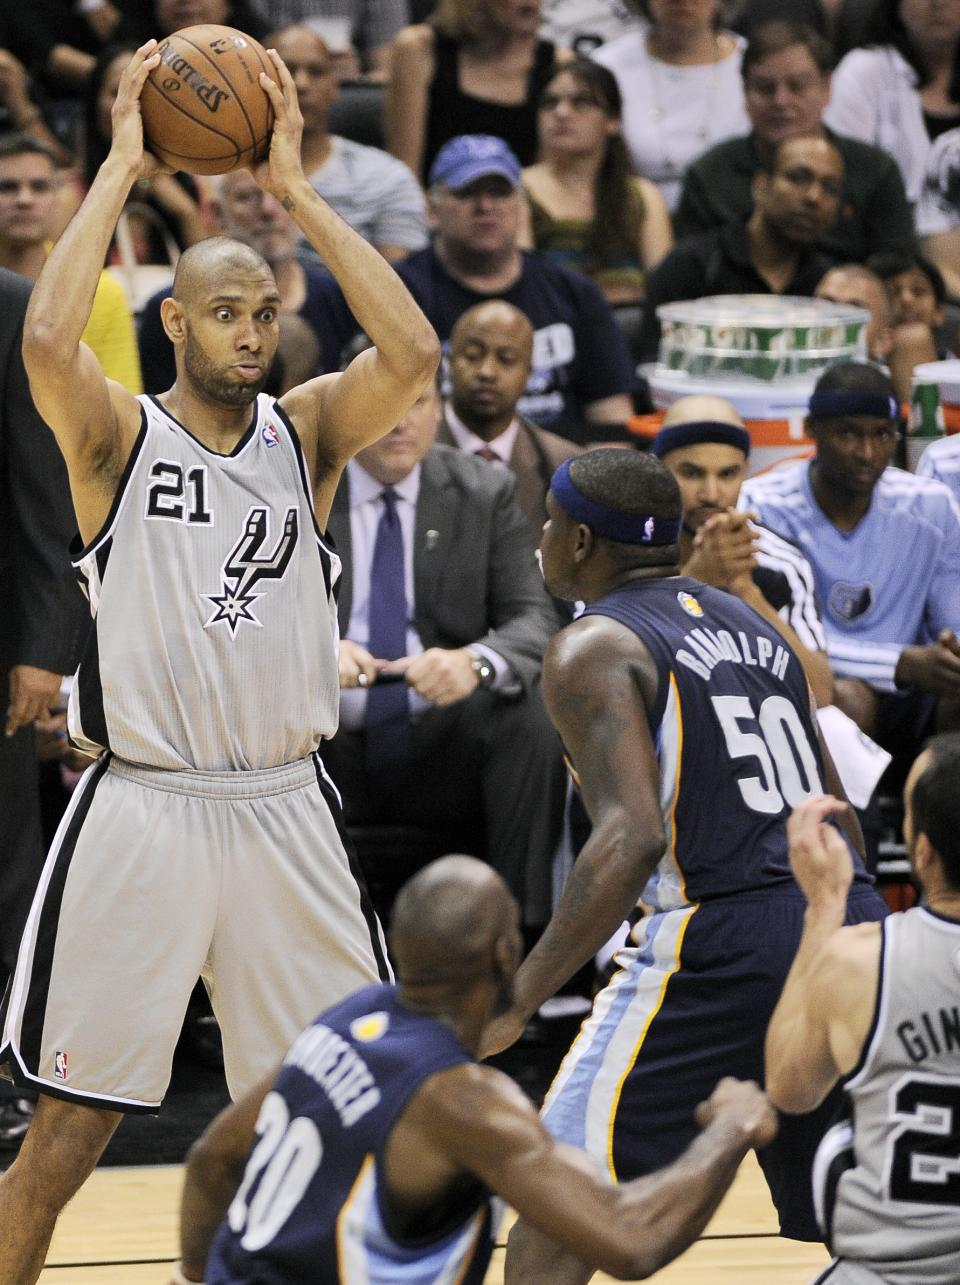 San Antonio Spurs' Tim Duncan, left, looks to pass around Memphis Grizzlies' Zach Randolph (50) during the second half of Game 1 of the Western Conference final NBA basketball playoff series on Sunday, May 19, 2013, in San Antonio. San Antonio won 105-83. (AP Photo/Darren Abate)